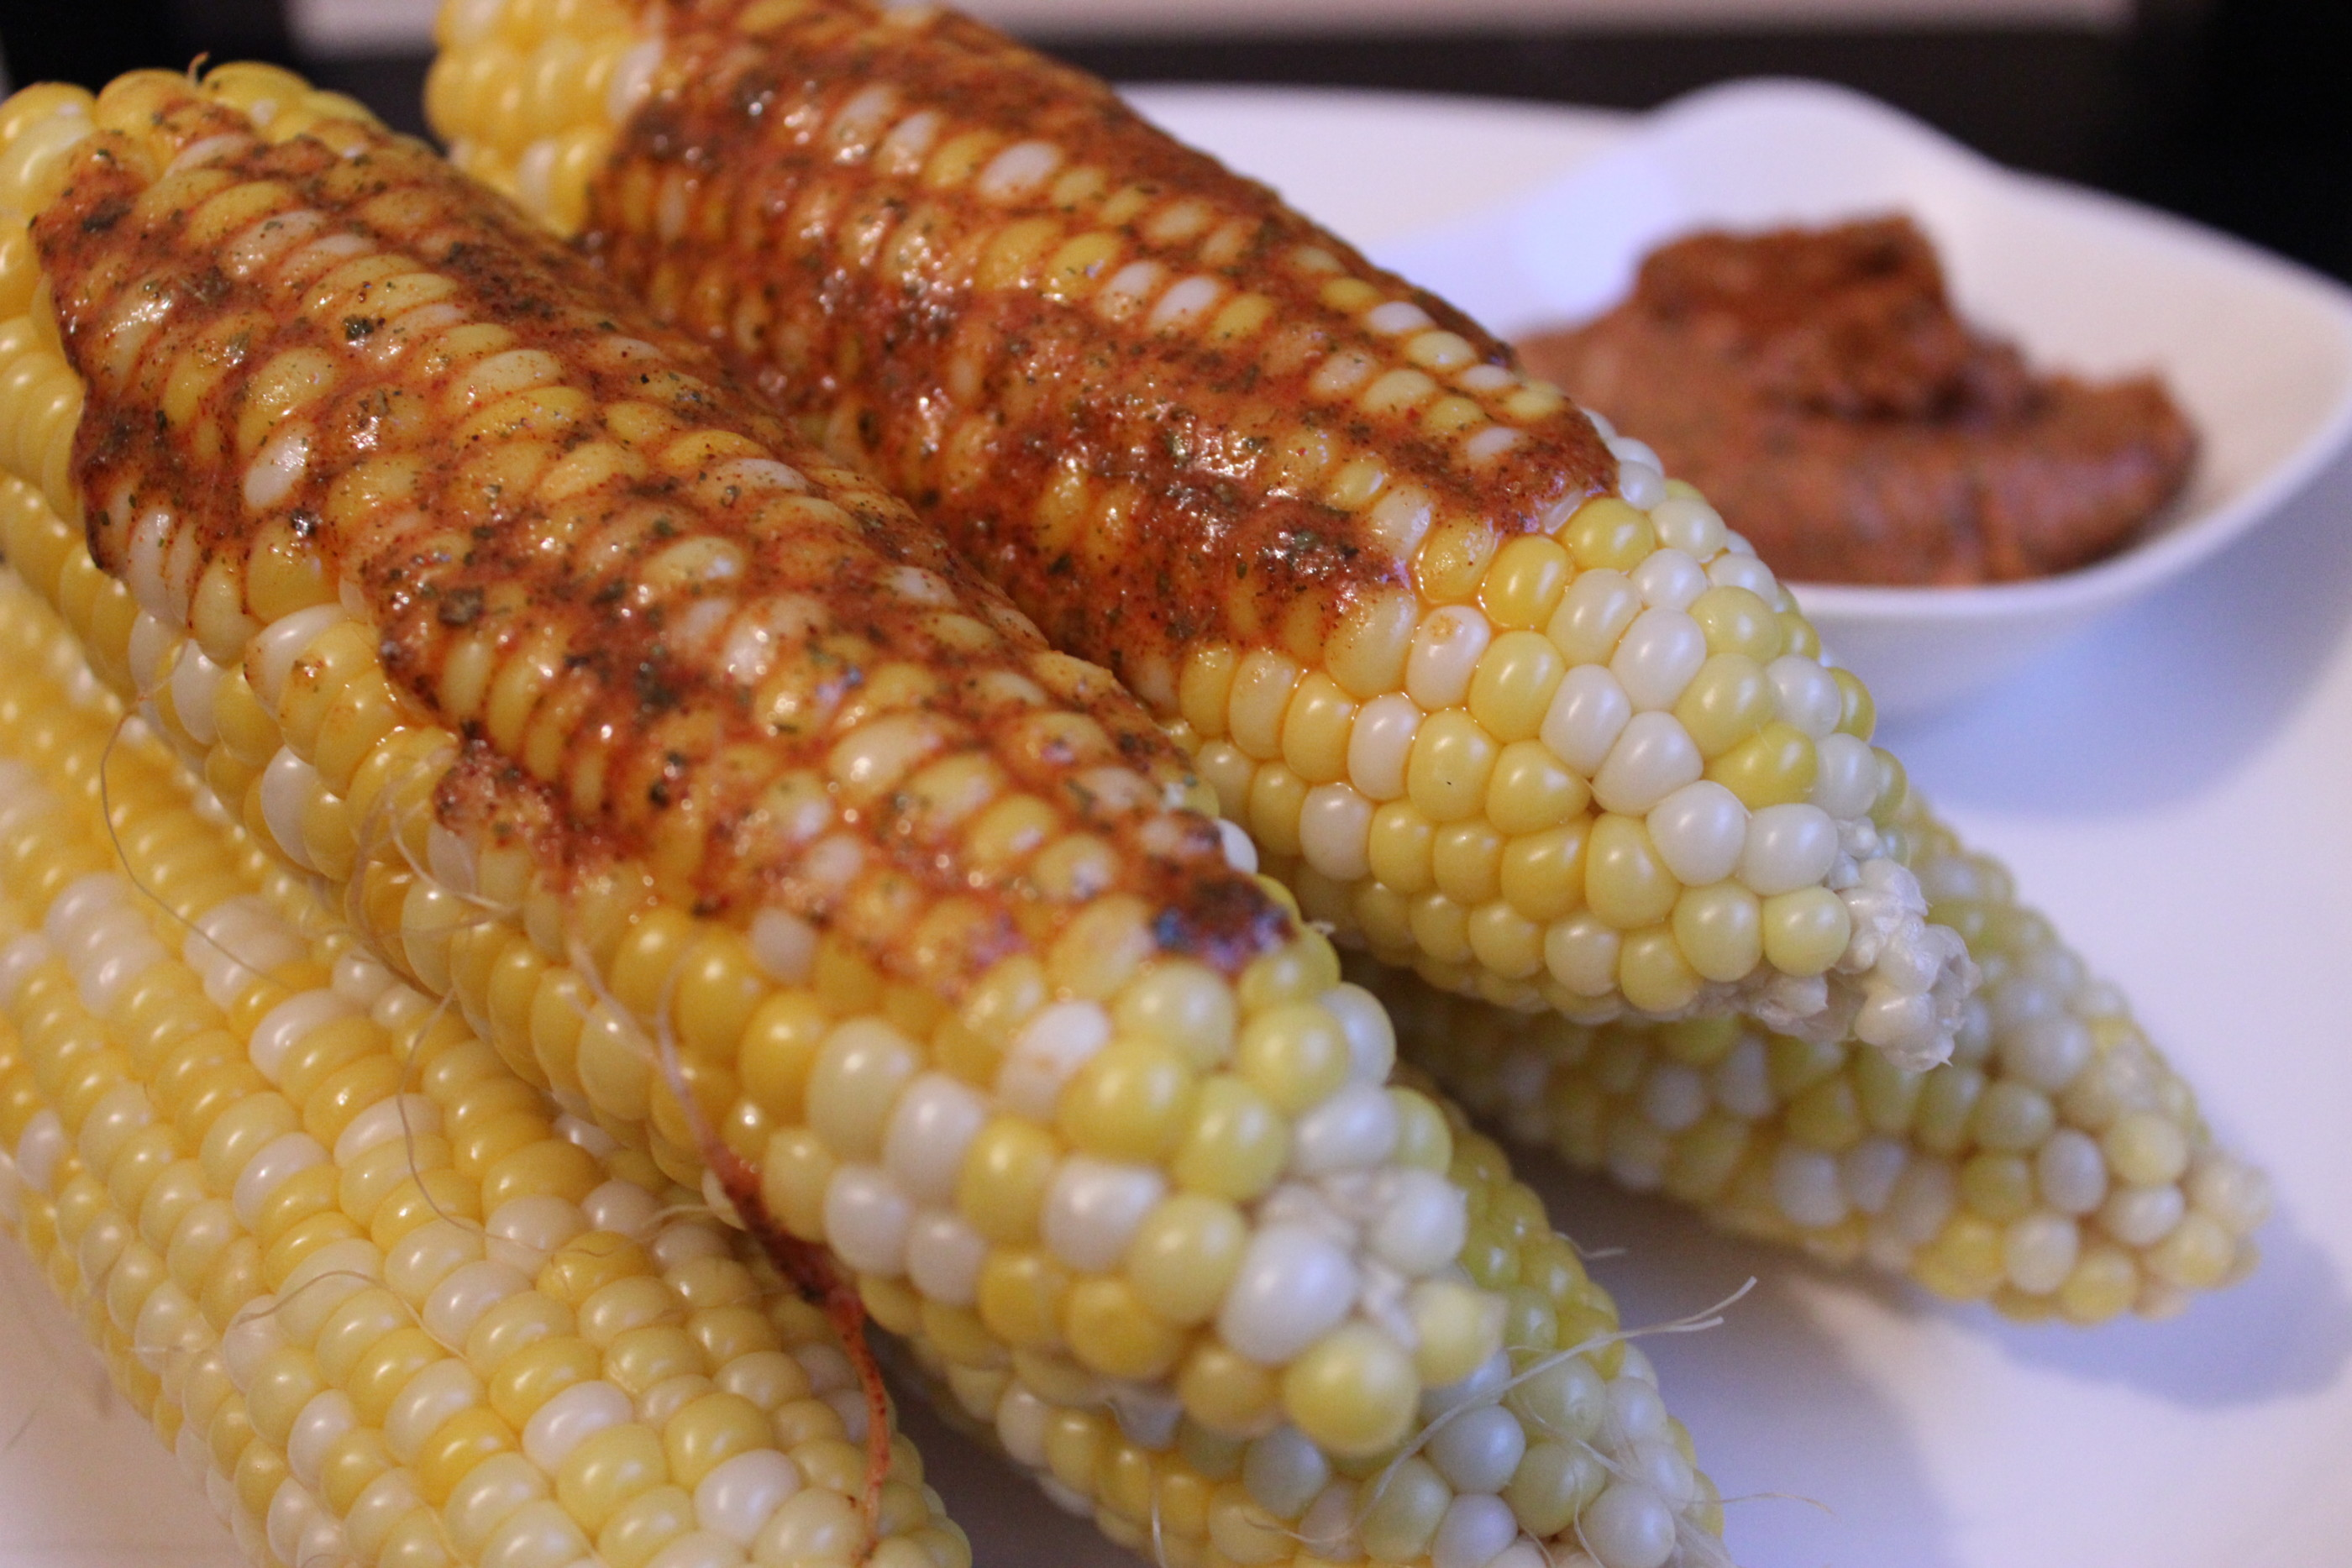 Grilled Corn on the Cob with Smoky Cajun Butter - These Things I Love